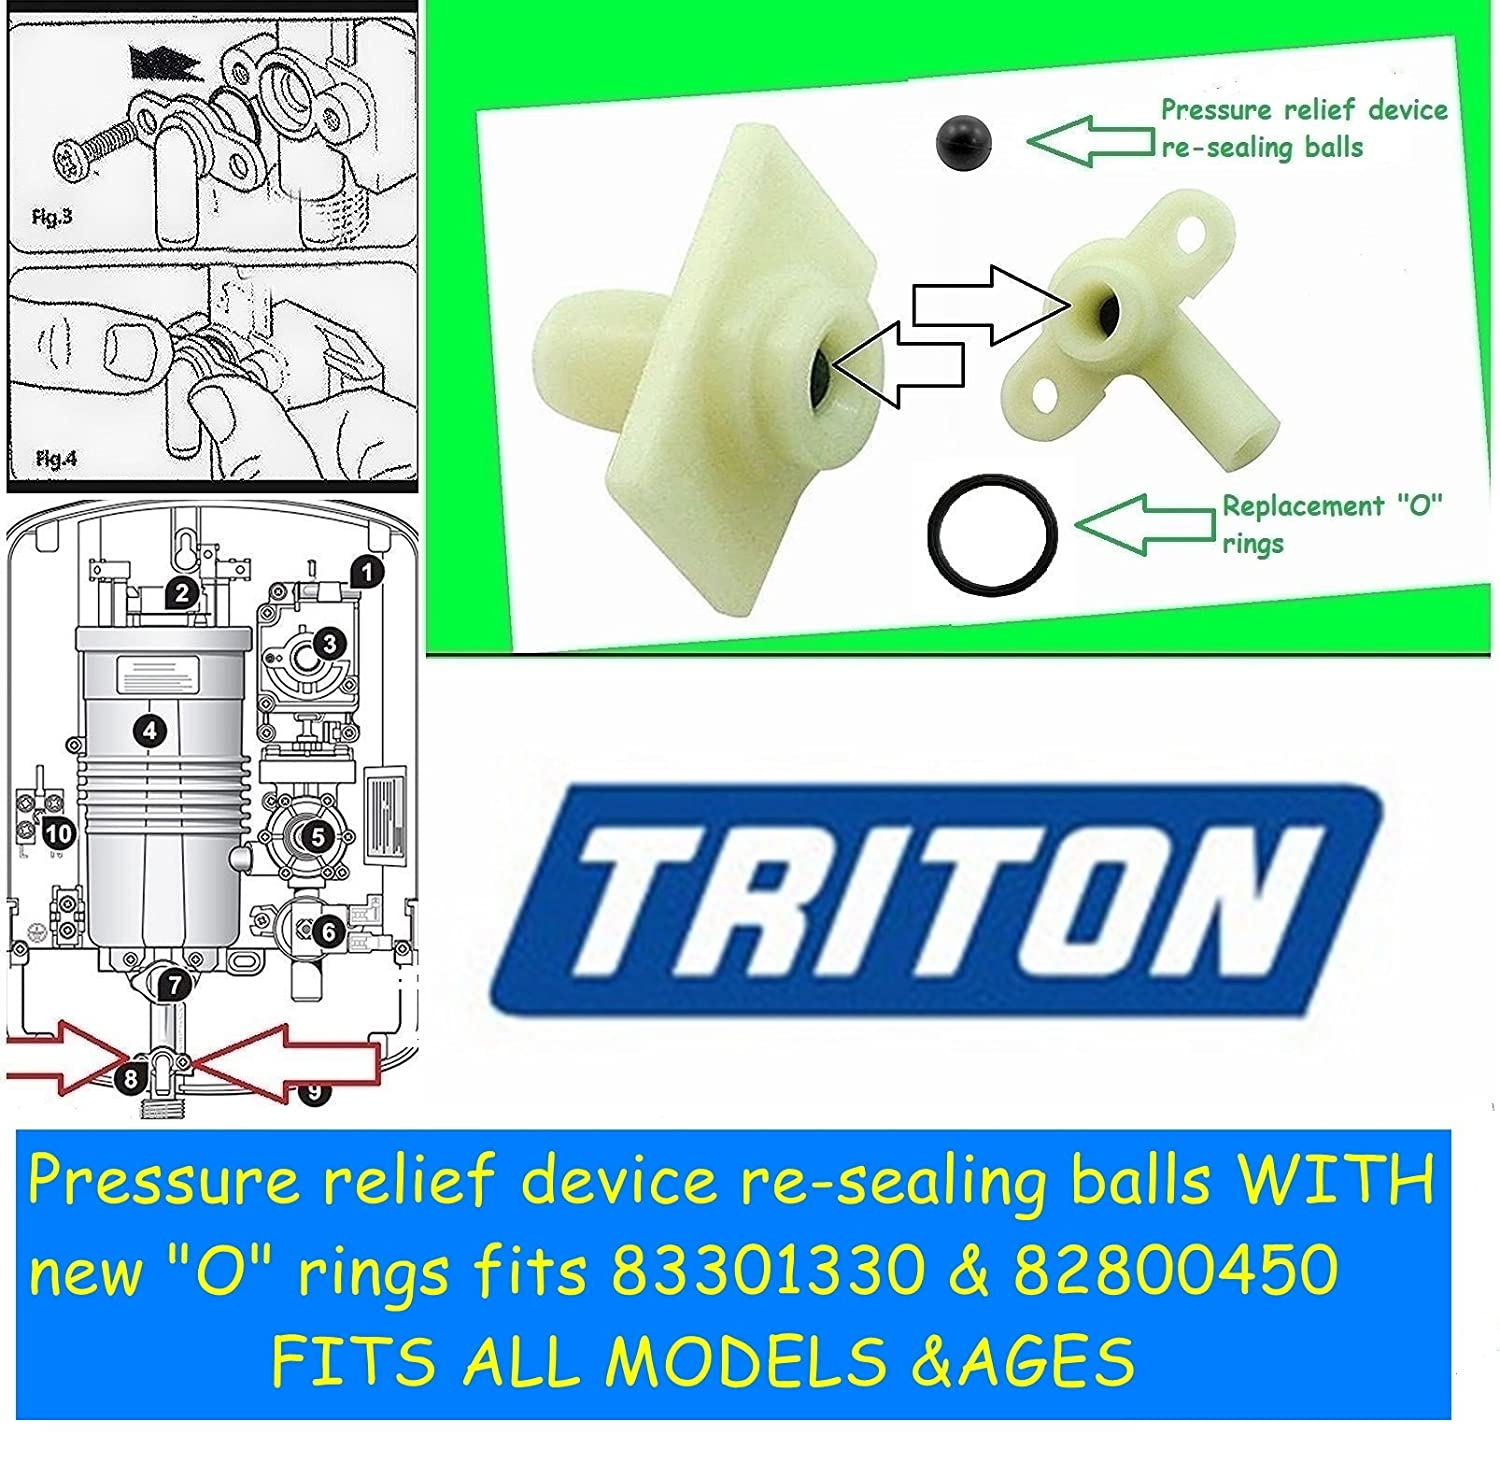 Triton electric shower leaking? Pressure Relief Device (PRD) repair ...